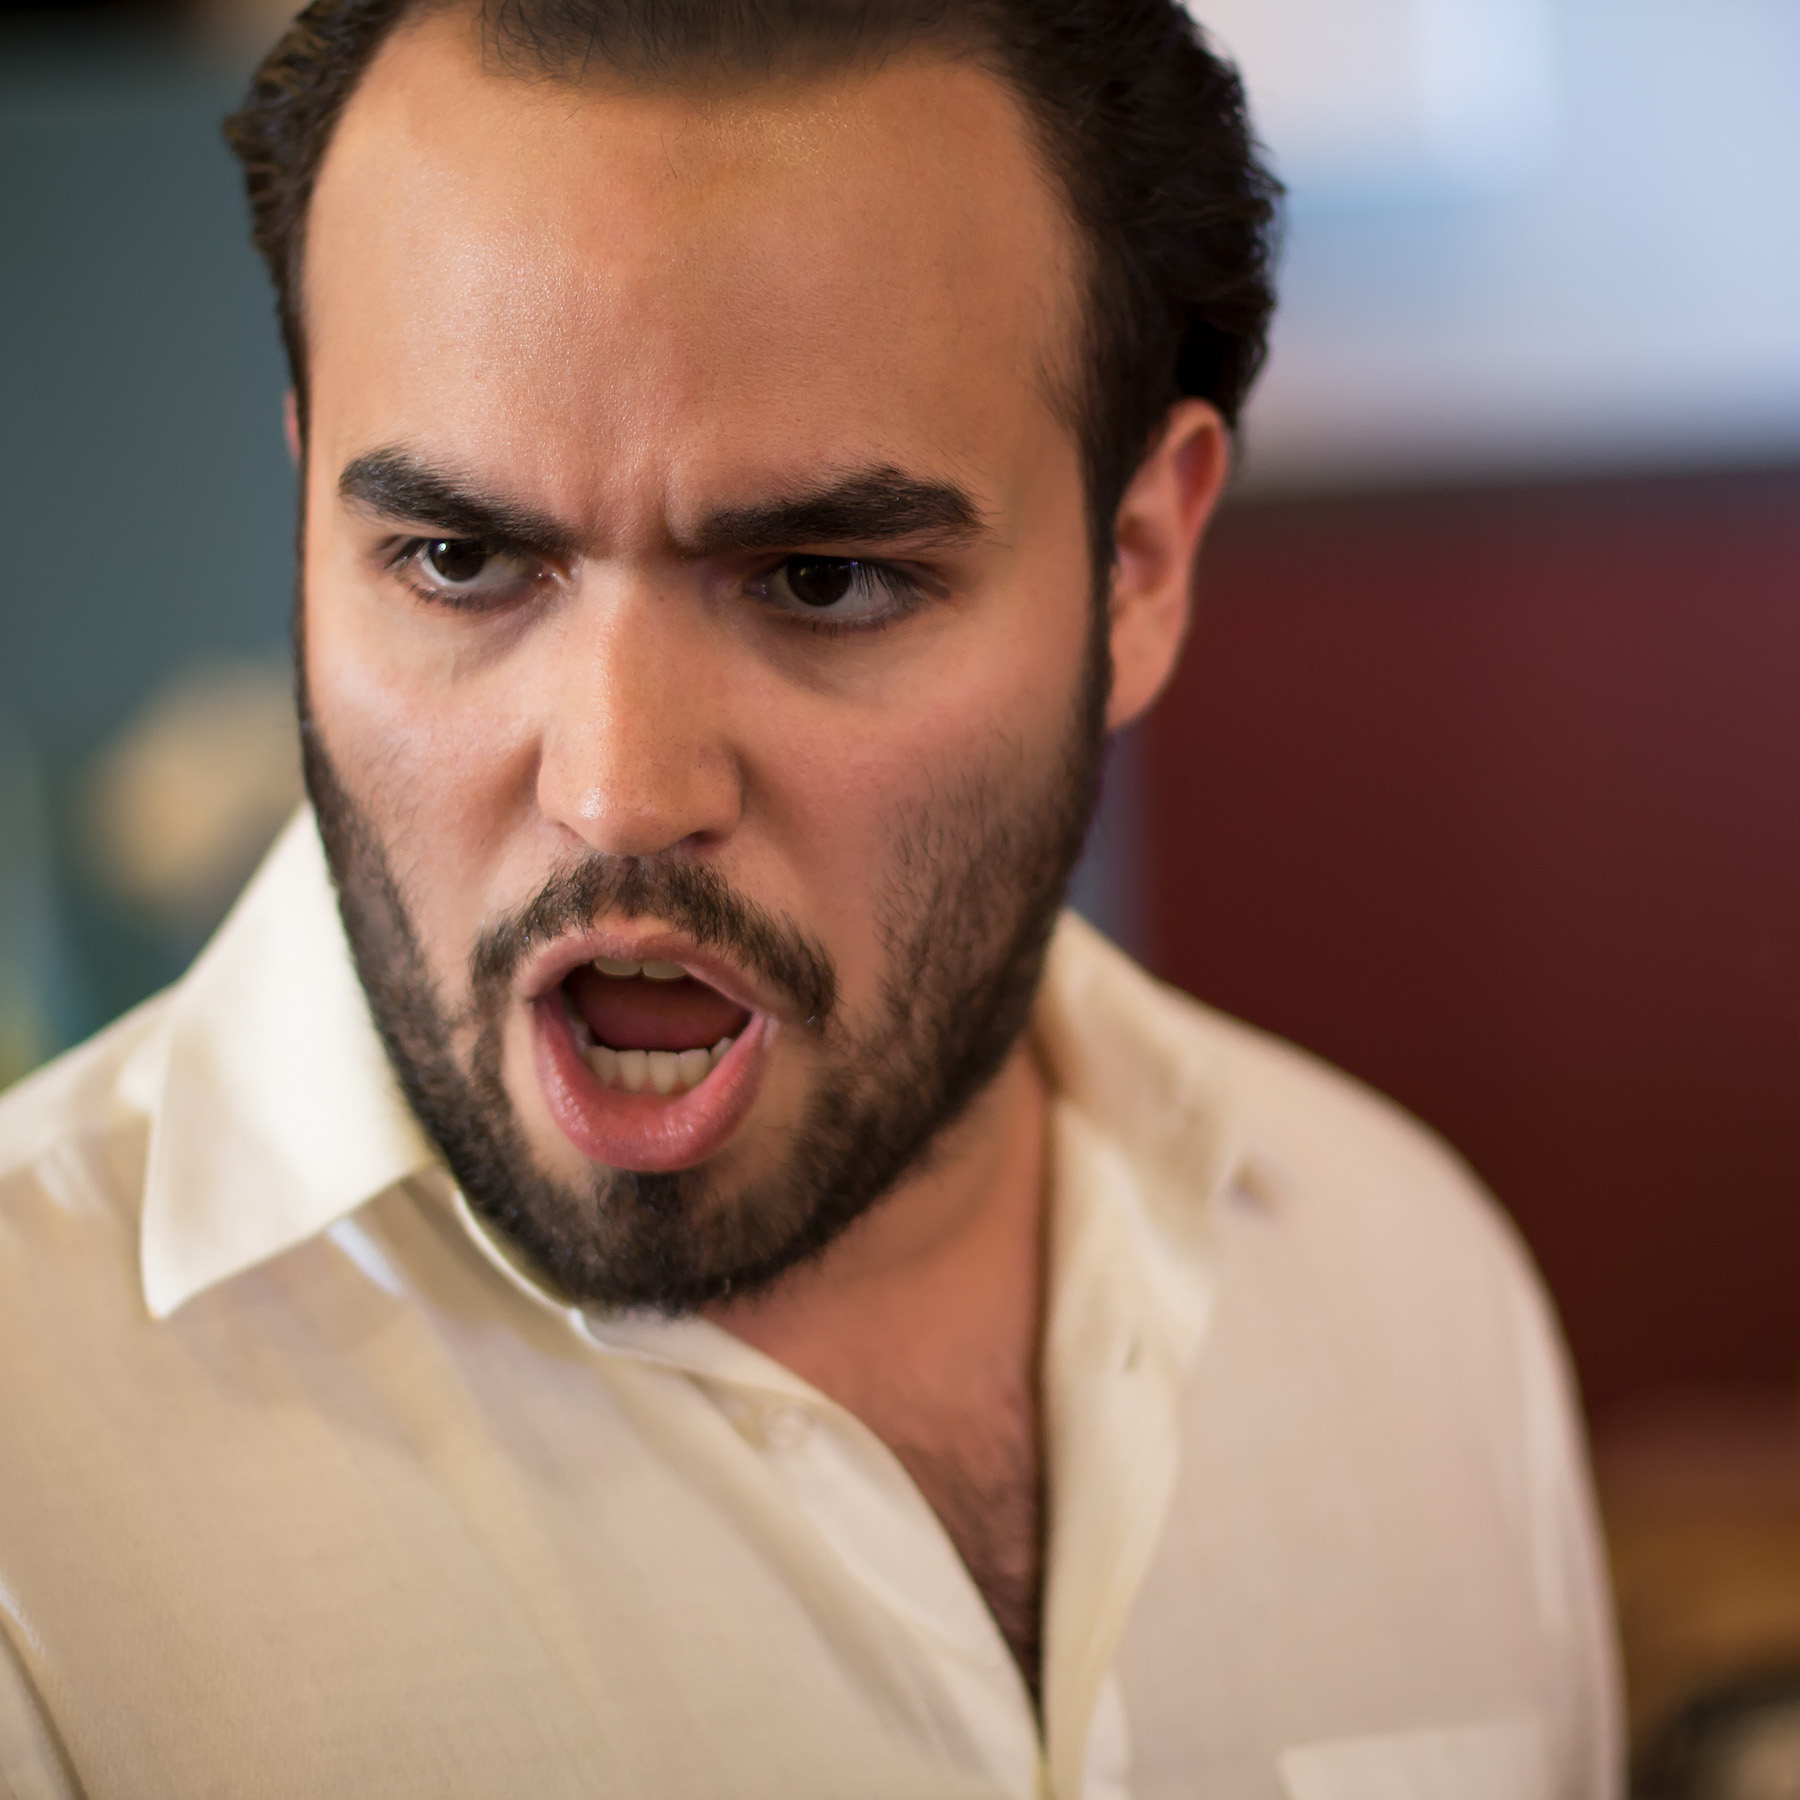 A man of Latino heritage with black hair and a black beard sings onstage with an intense expression on his face.